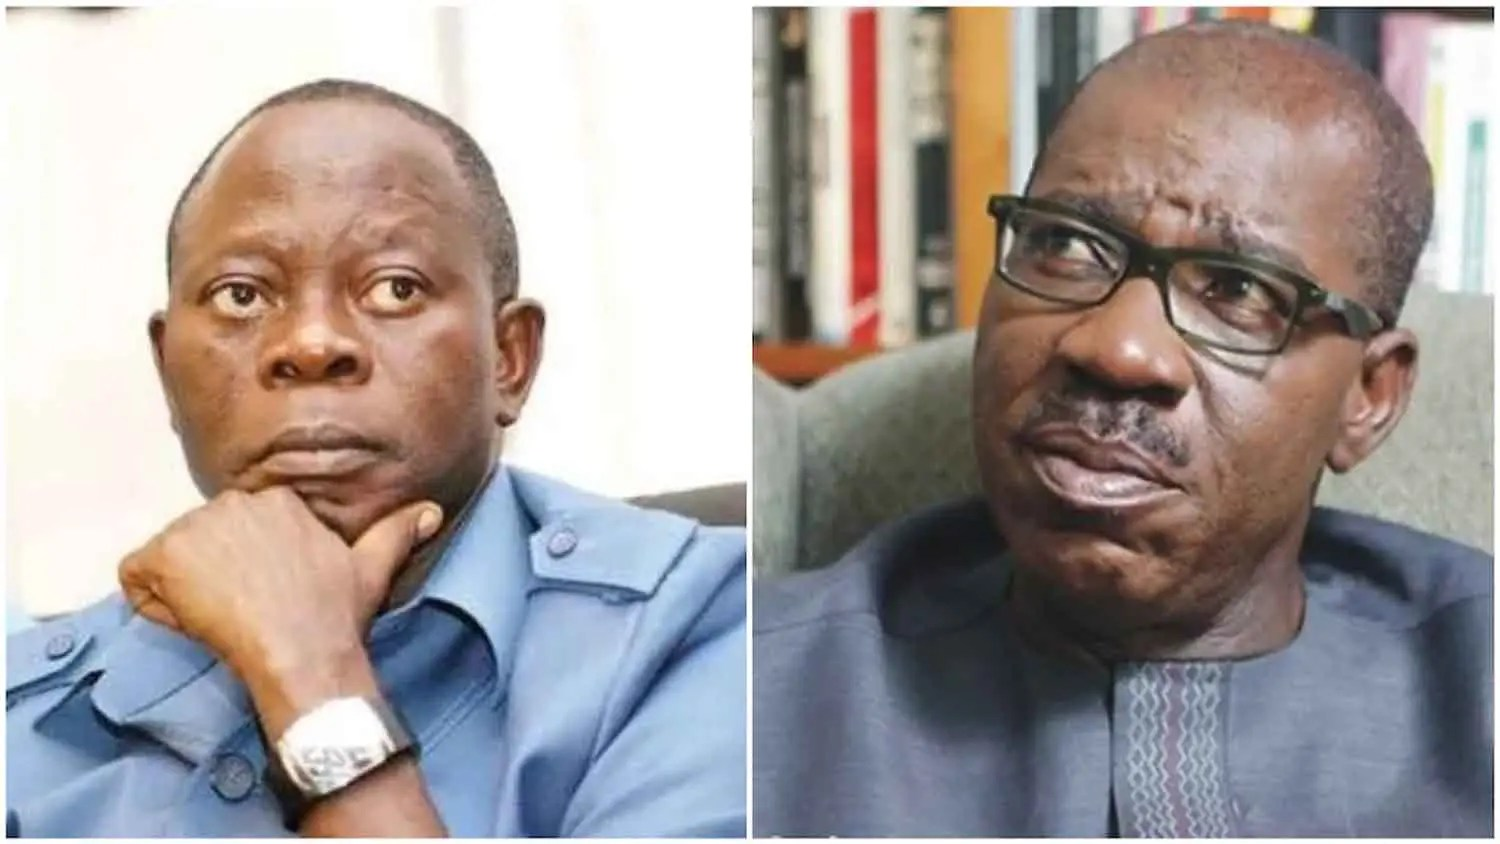 EDO ASSEMBLY: How court ruling deepened crisis - Vanguard